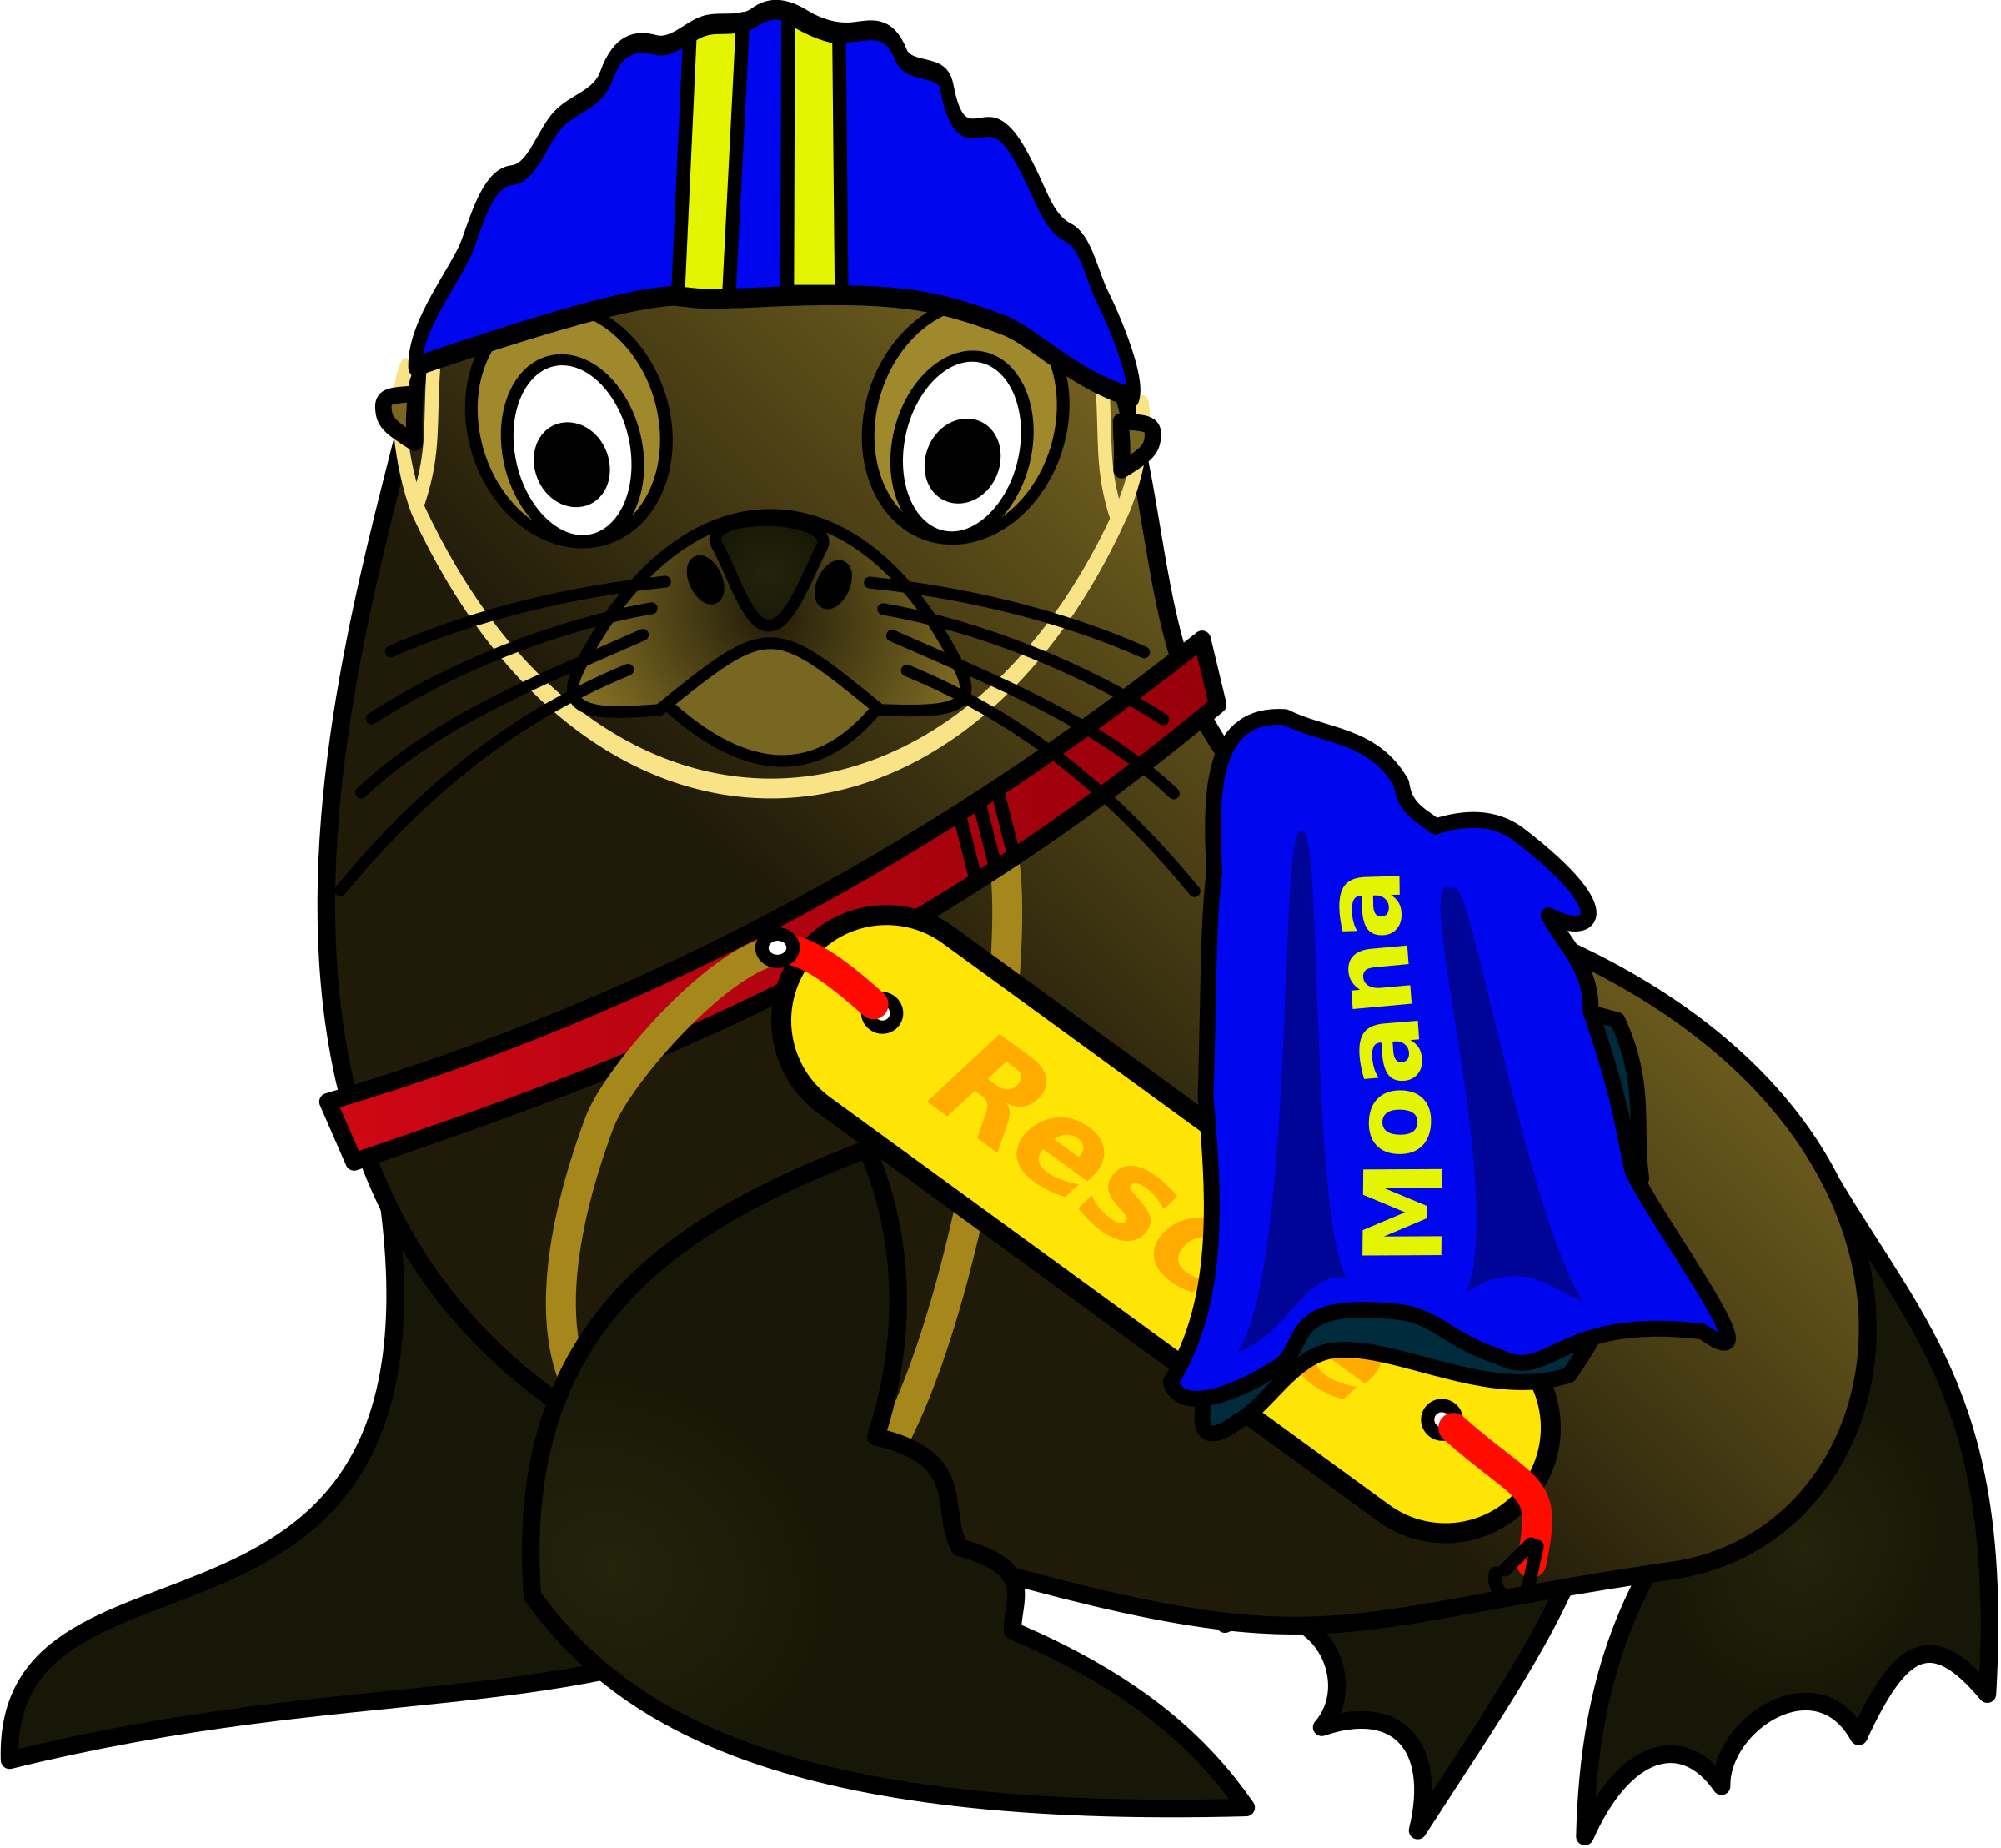 Surf Life Saving Seal by osotogari